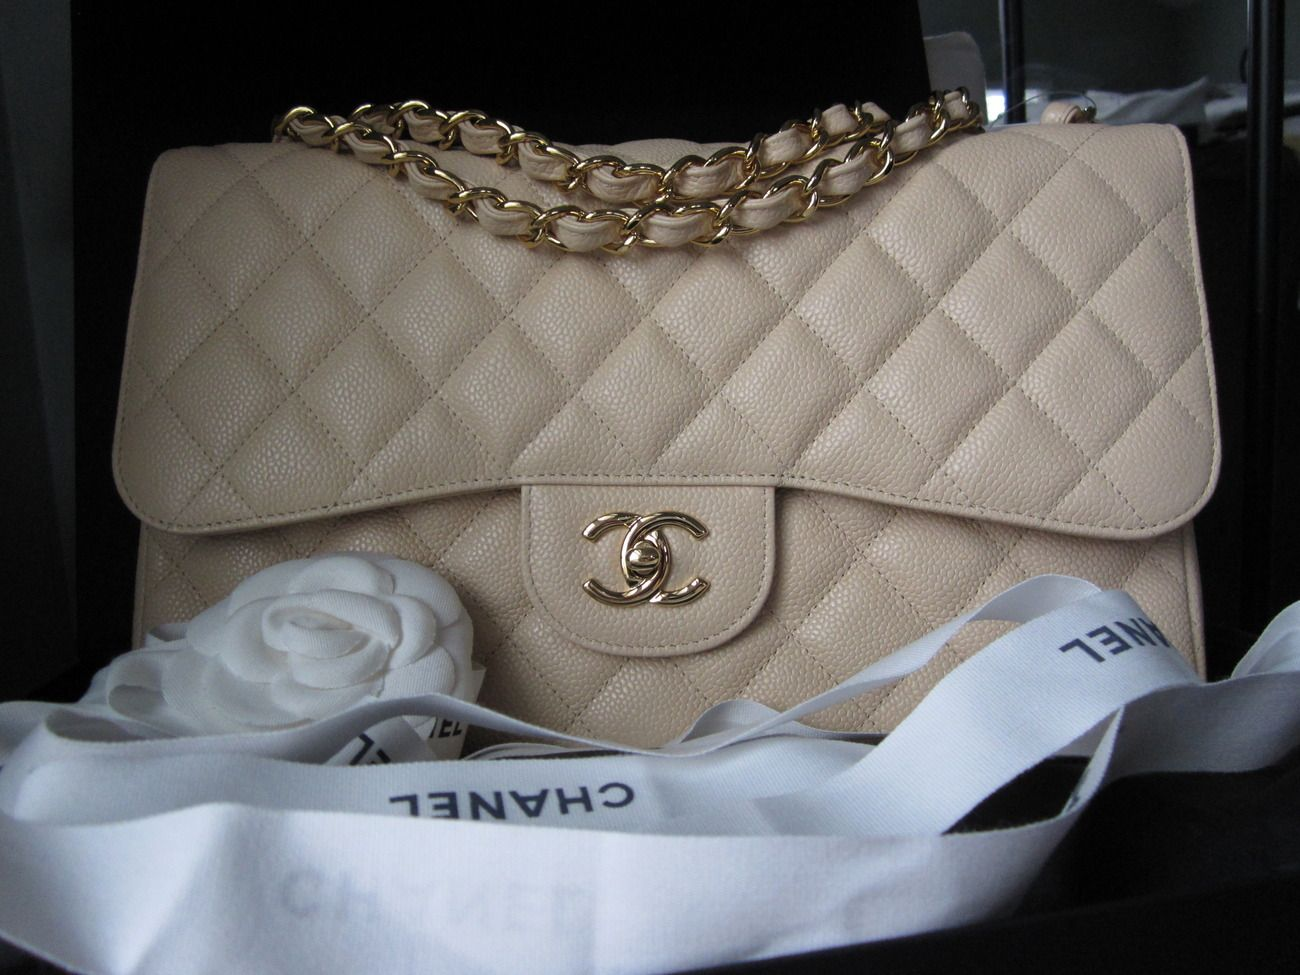 d0e77d26cd3a BNWT Chanel Beige Clair GHW Caviar Leather Jumbo Double Flap Bag - Handbags  & Bags